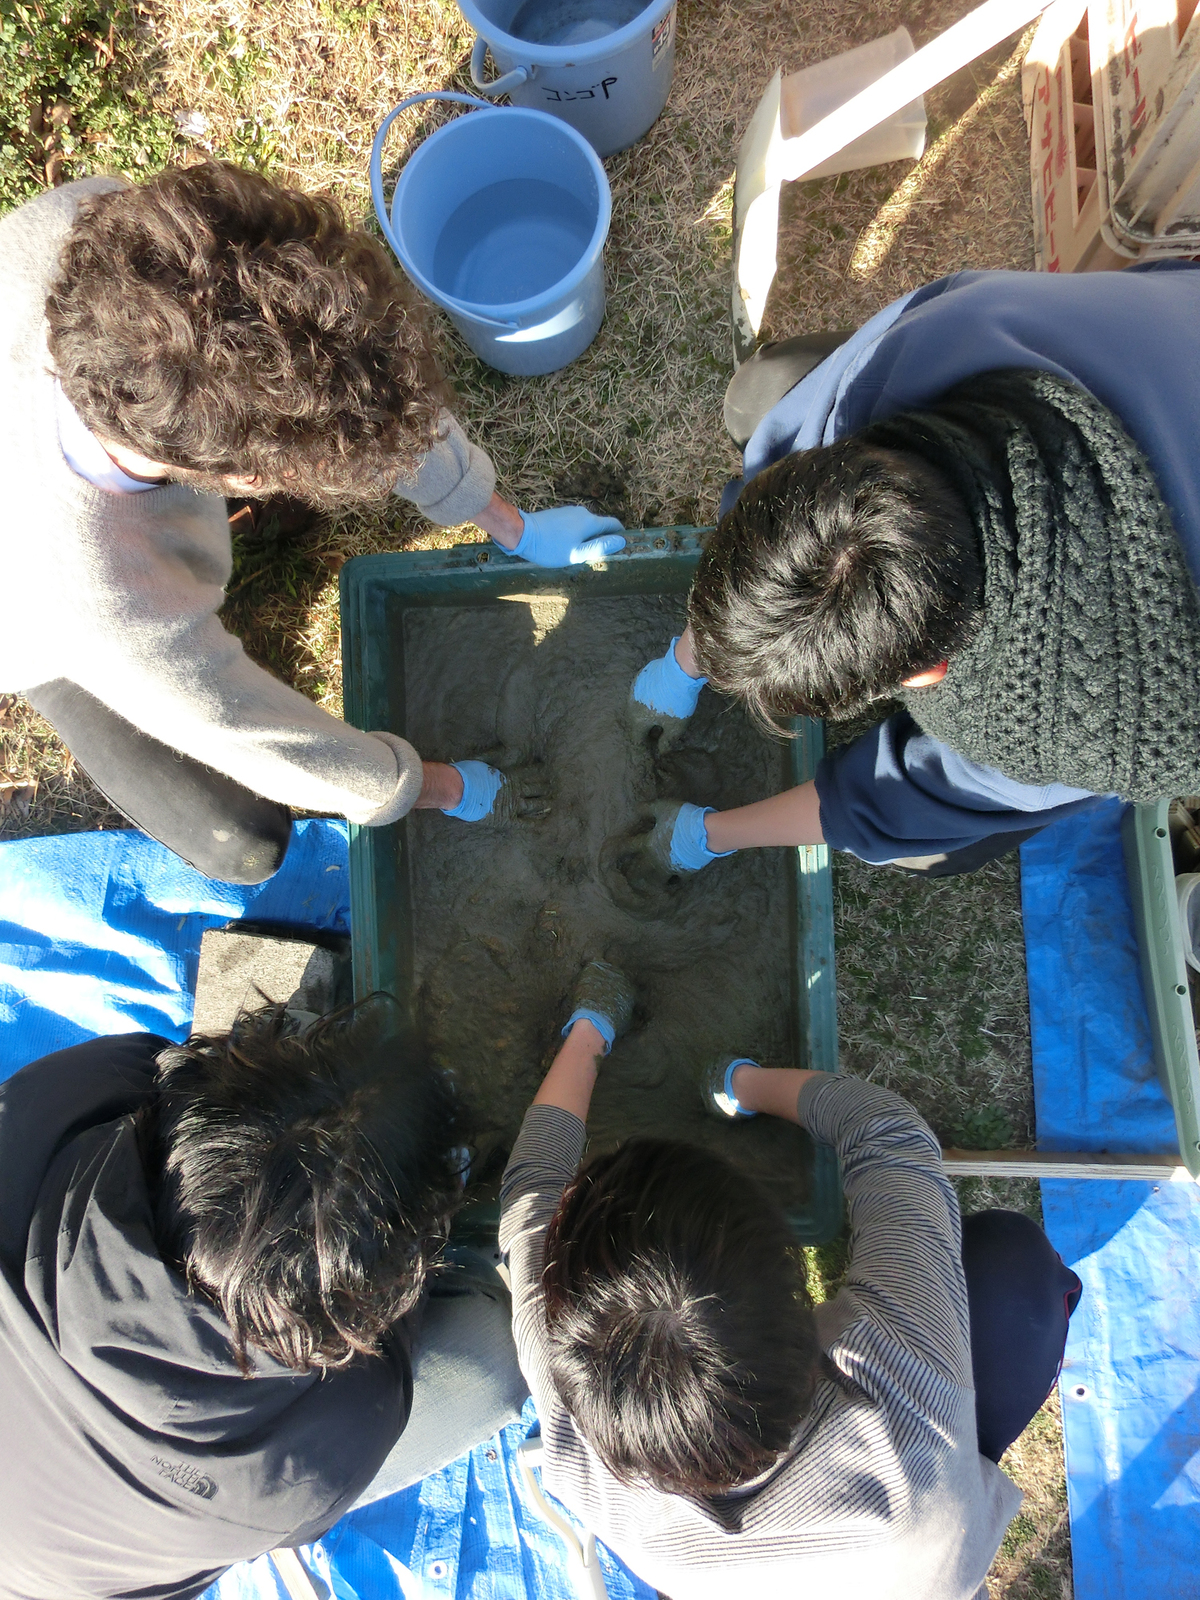 Testing concrete mixes at the Keio workshop. Courtesy of Bill Galloway.